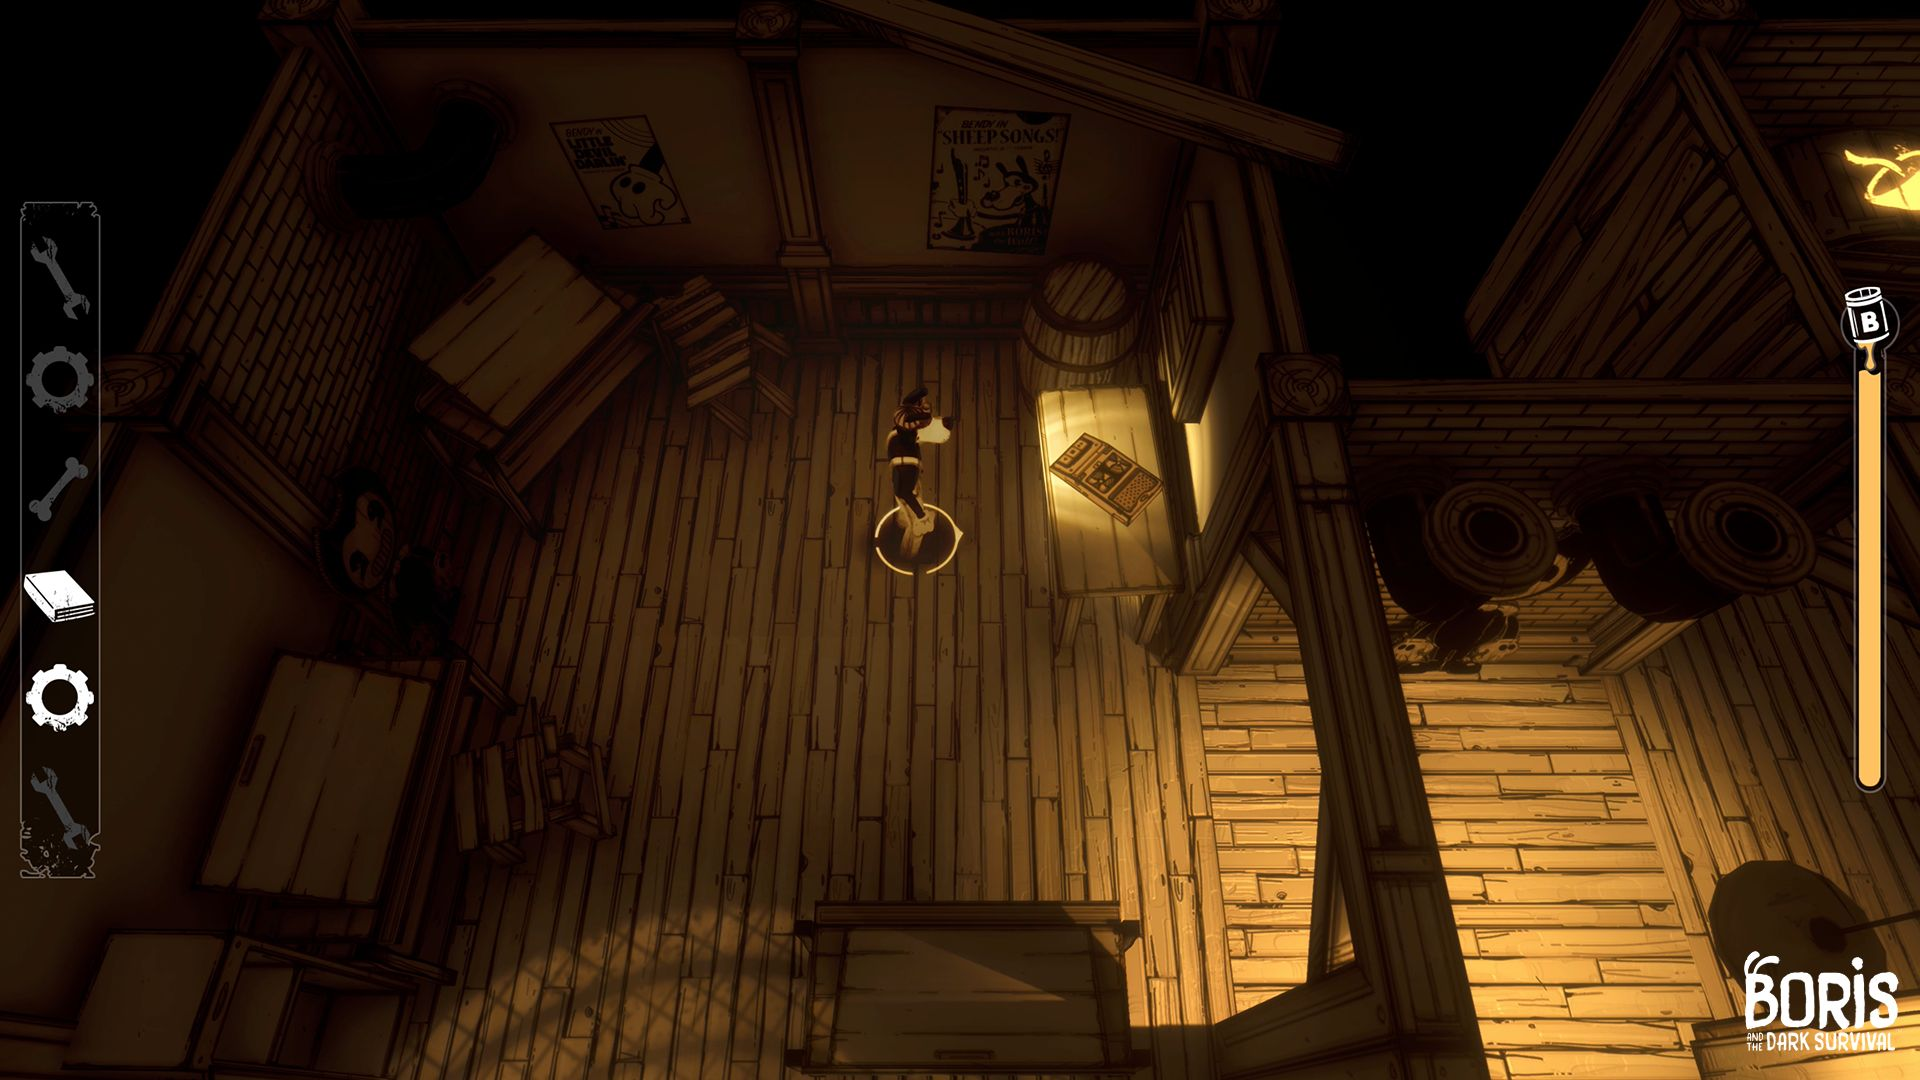 Boris and the Dark Survival para Android